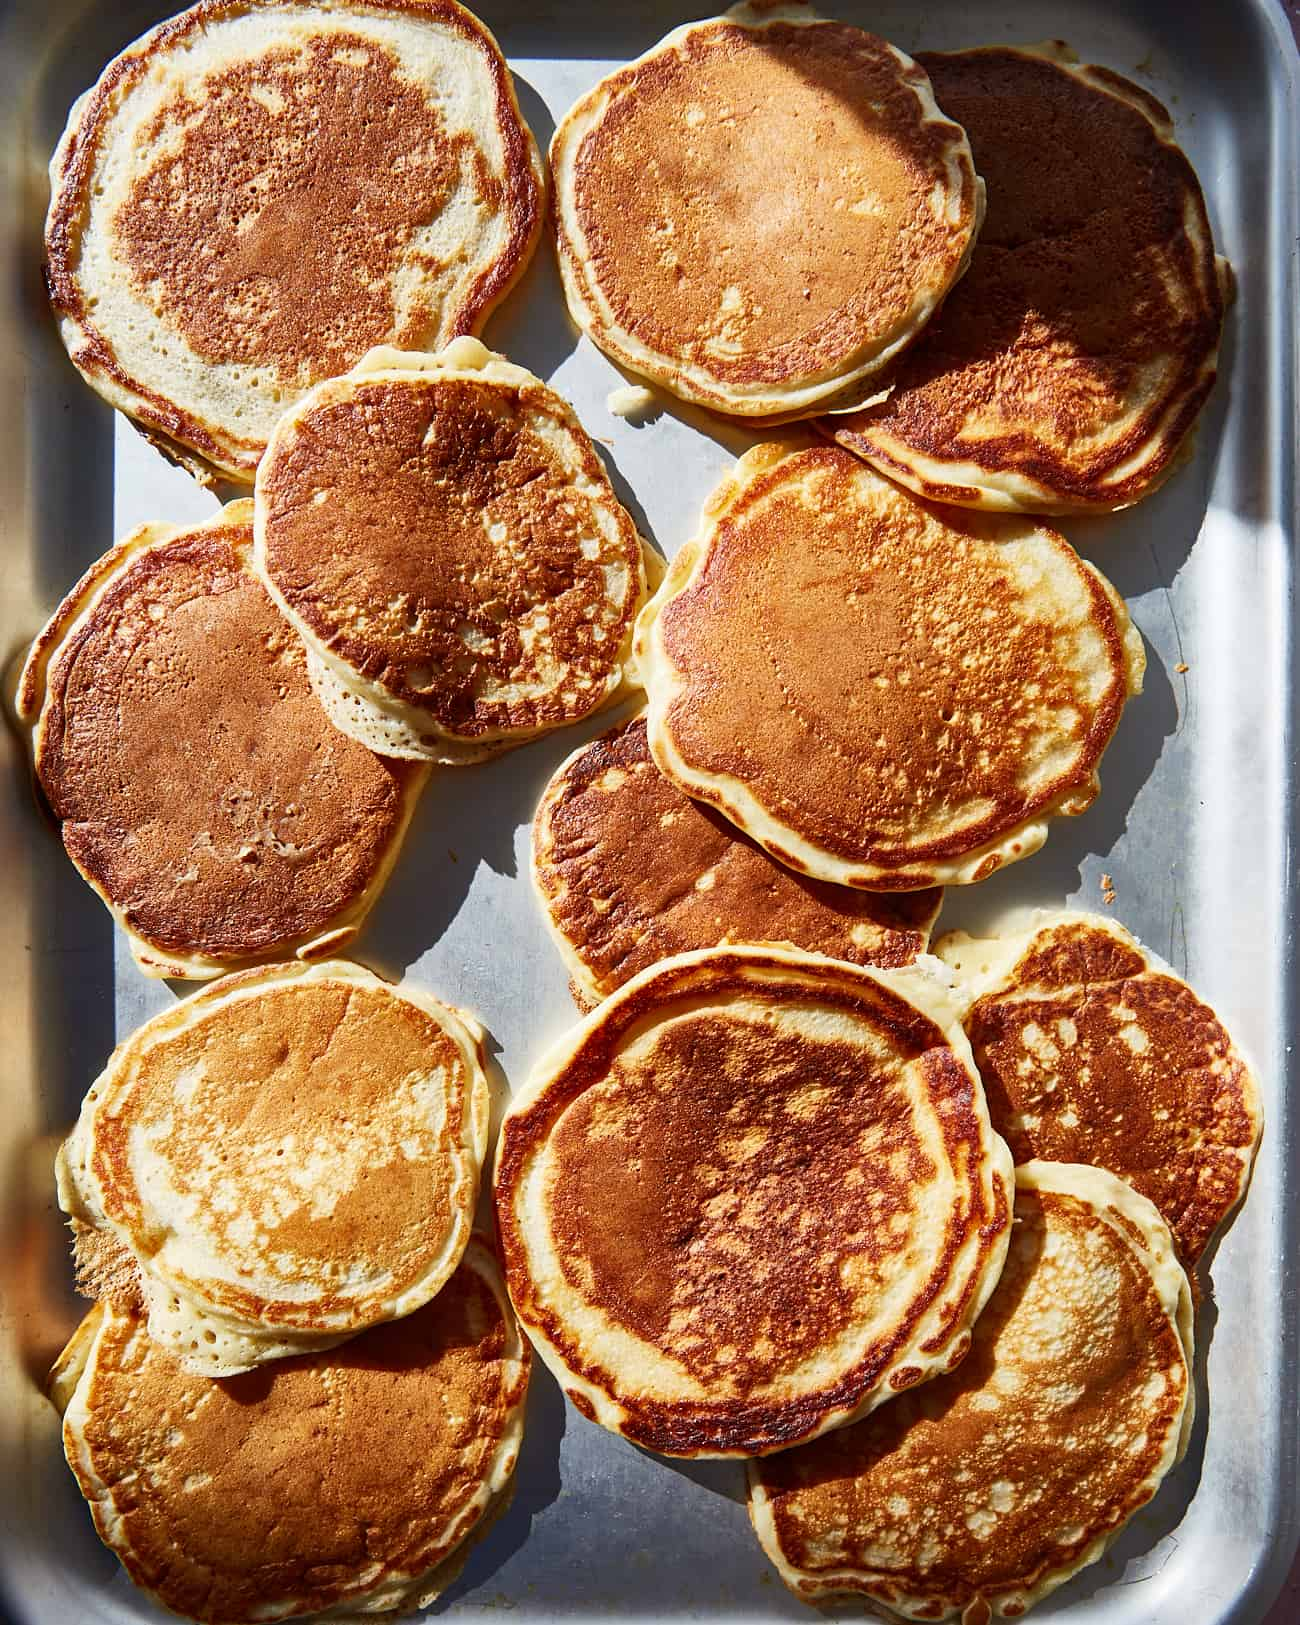 fluffy American pancakes on a tray